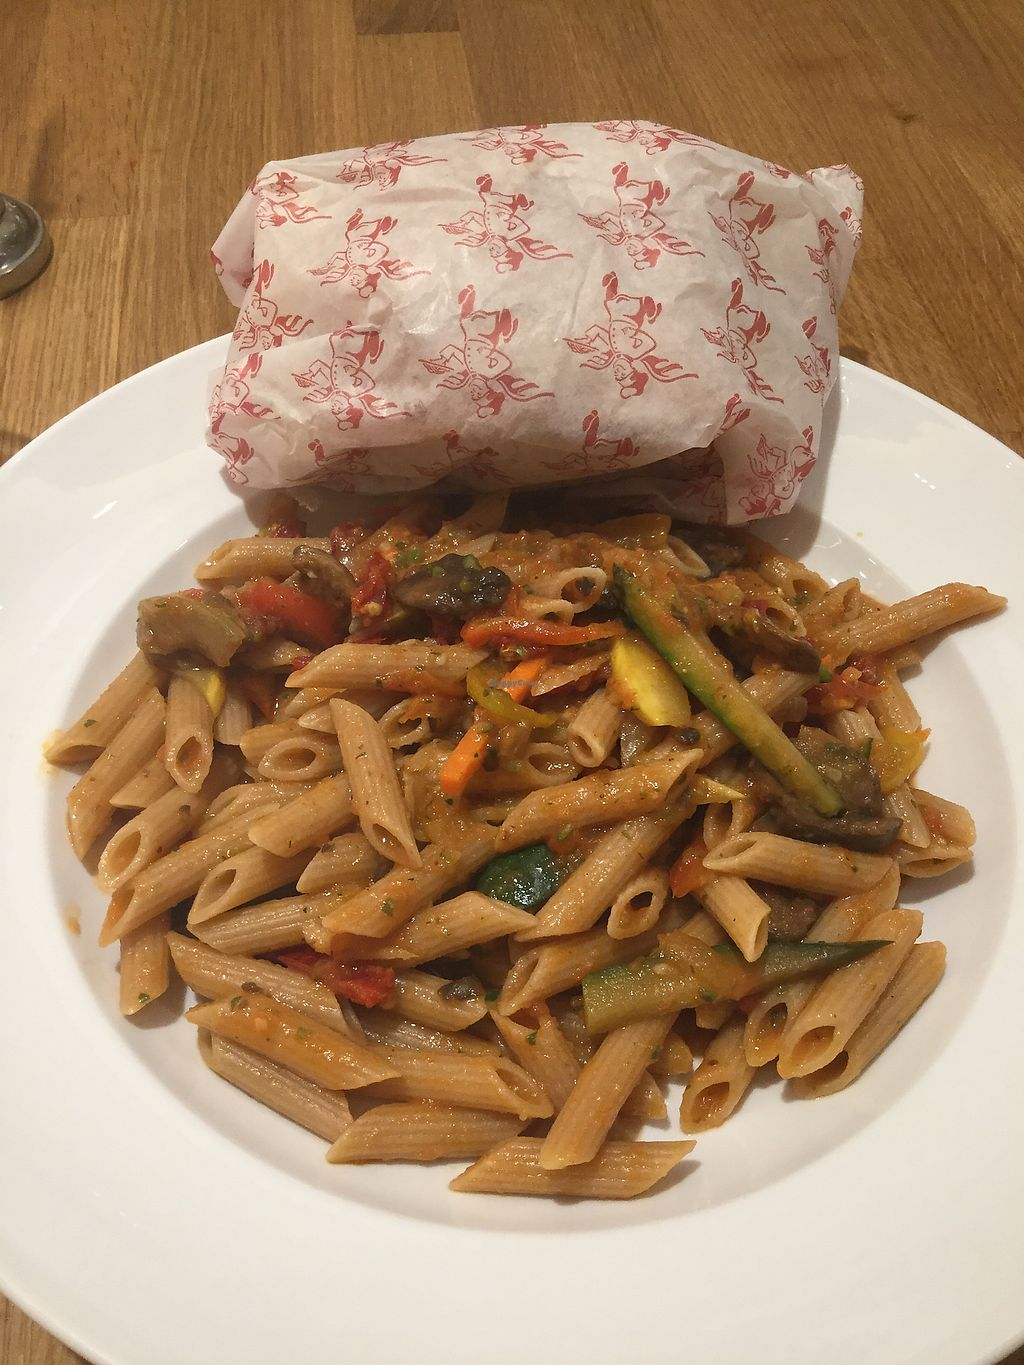 """Photo of Casa Barilla  by <a href=""""/members/profile/DianaKaren"""">DianaKaren</a> <br/>Penna Primavera with a side of bread <br/> February 19, 2018  - <a href='/contact/abuse/image/112563/361415'>Report</a>"""